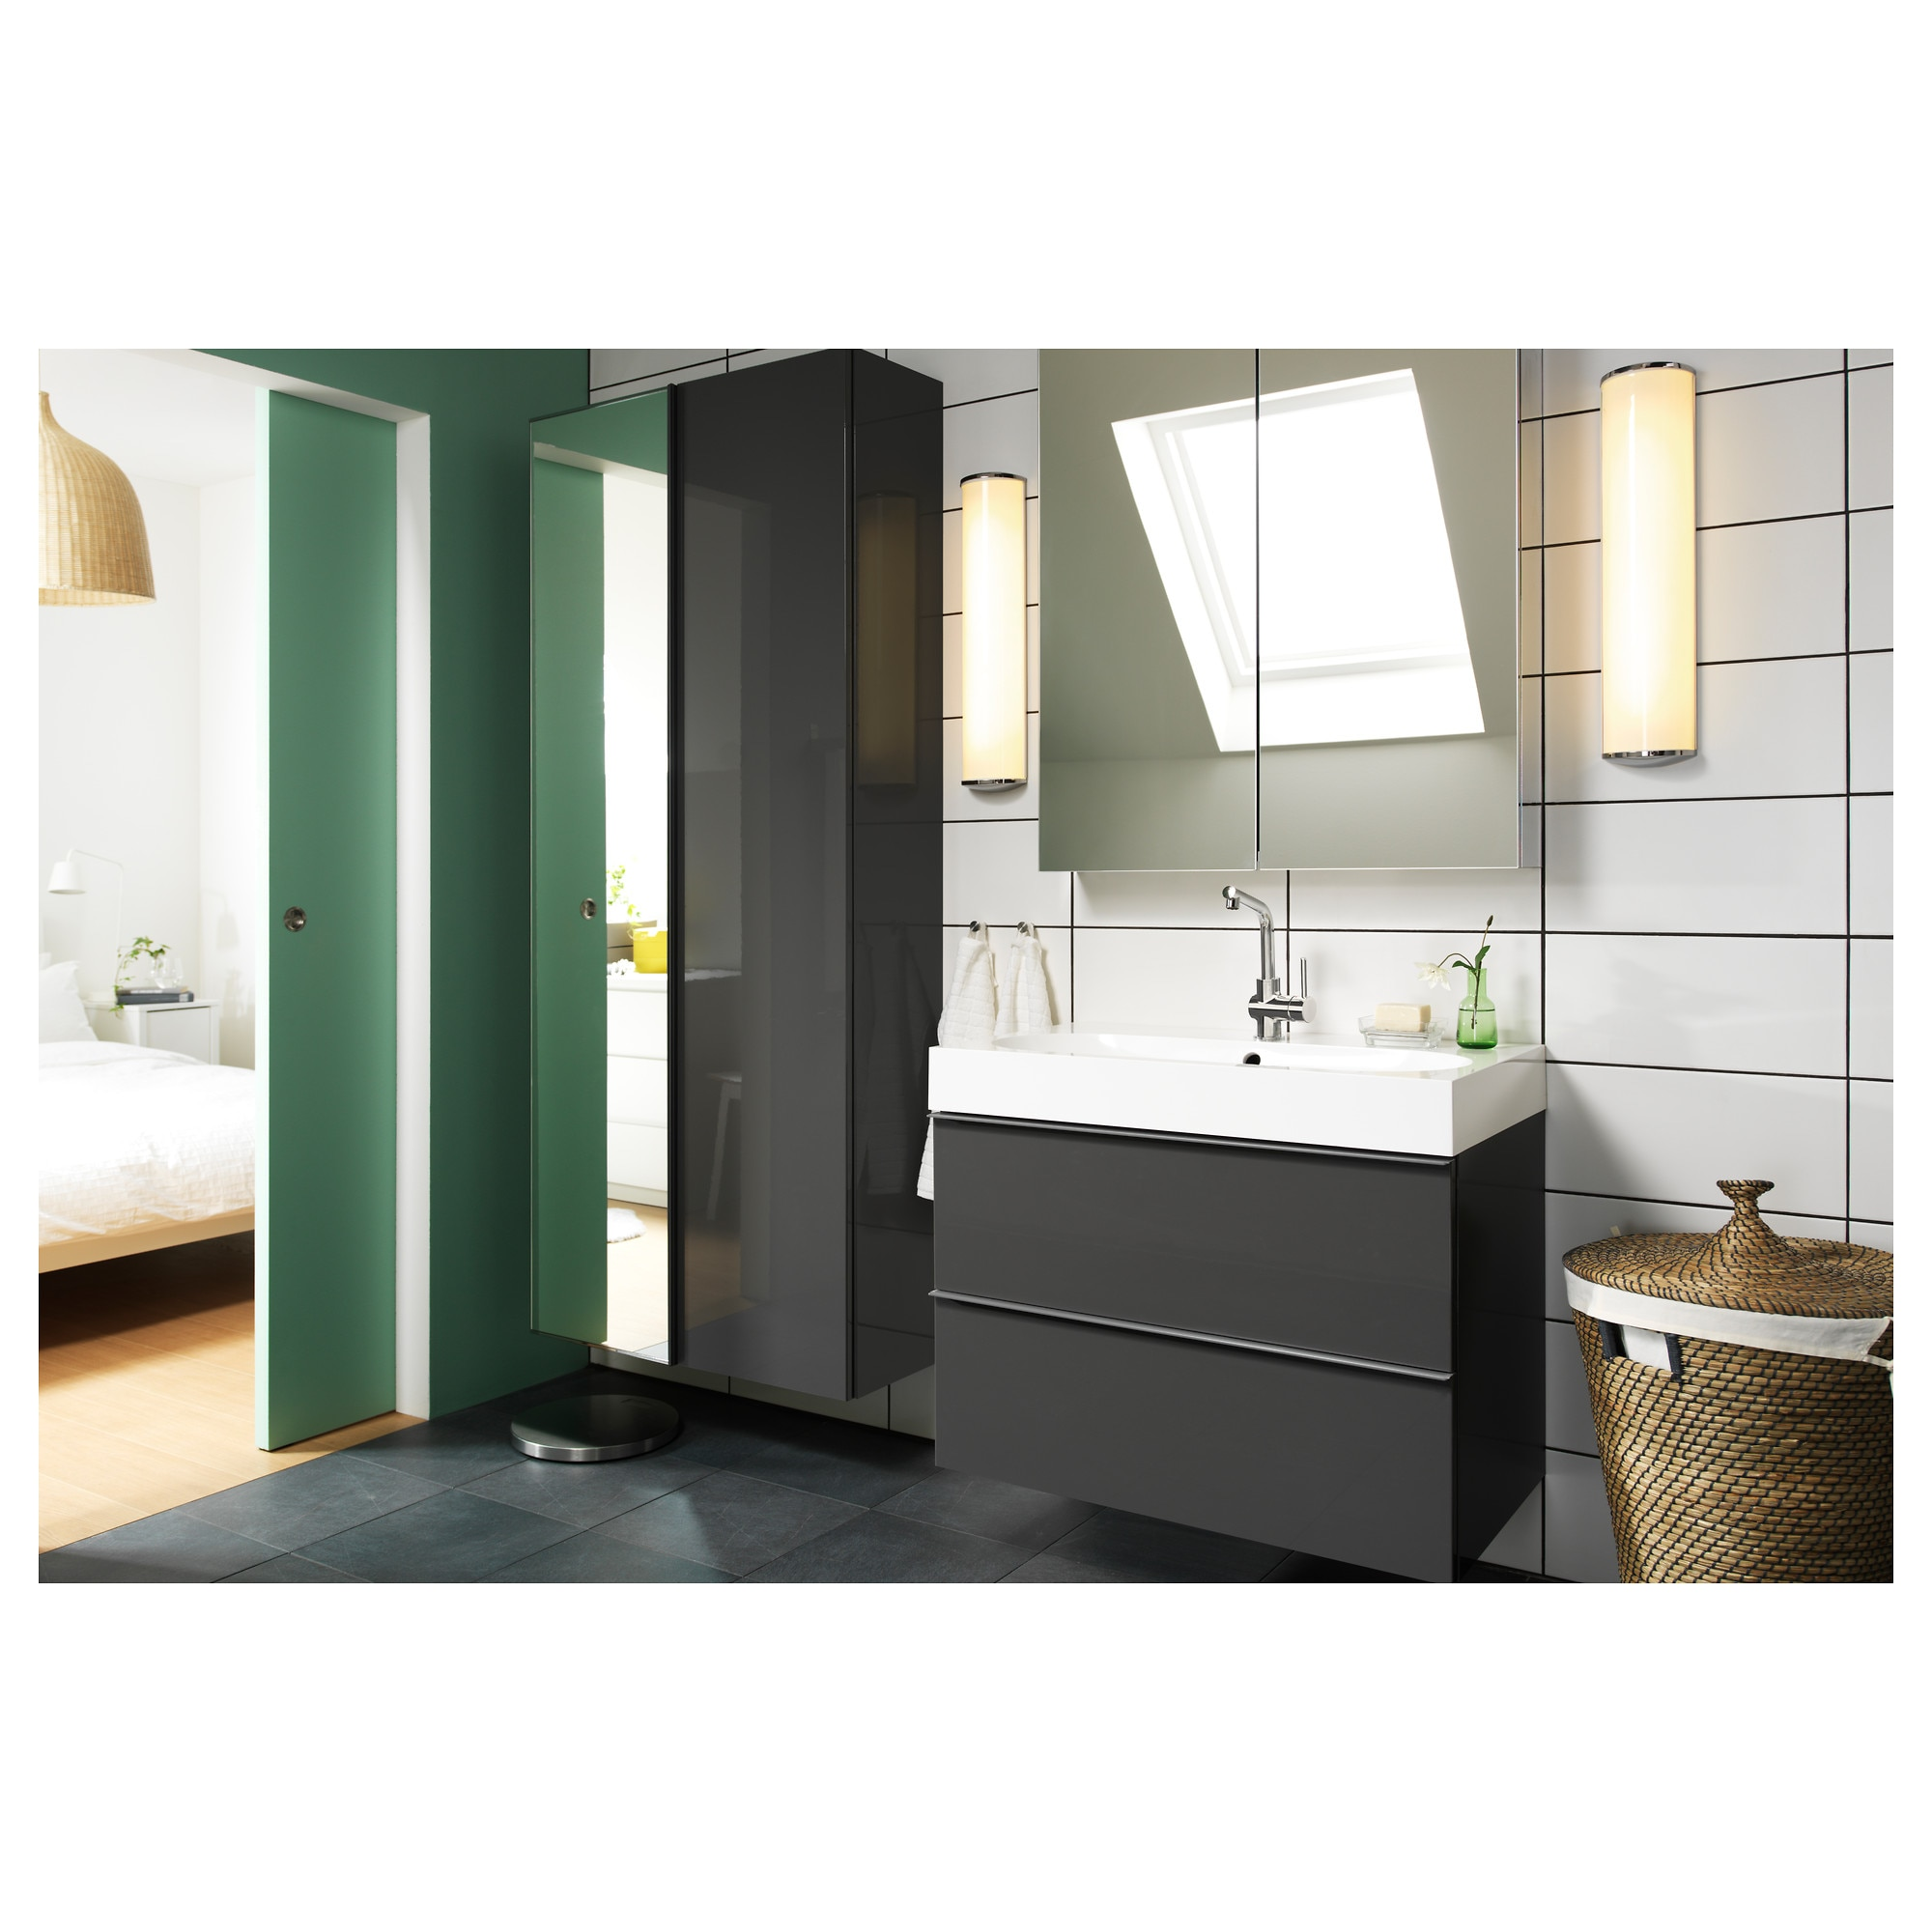 Ikea Bathroom Cabinet Doors design kitchen New in House Designer Room